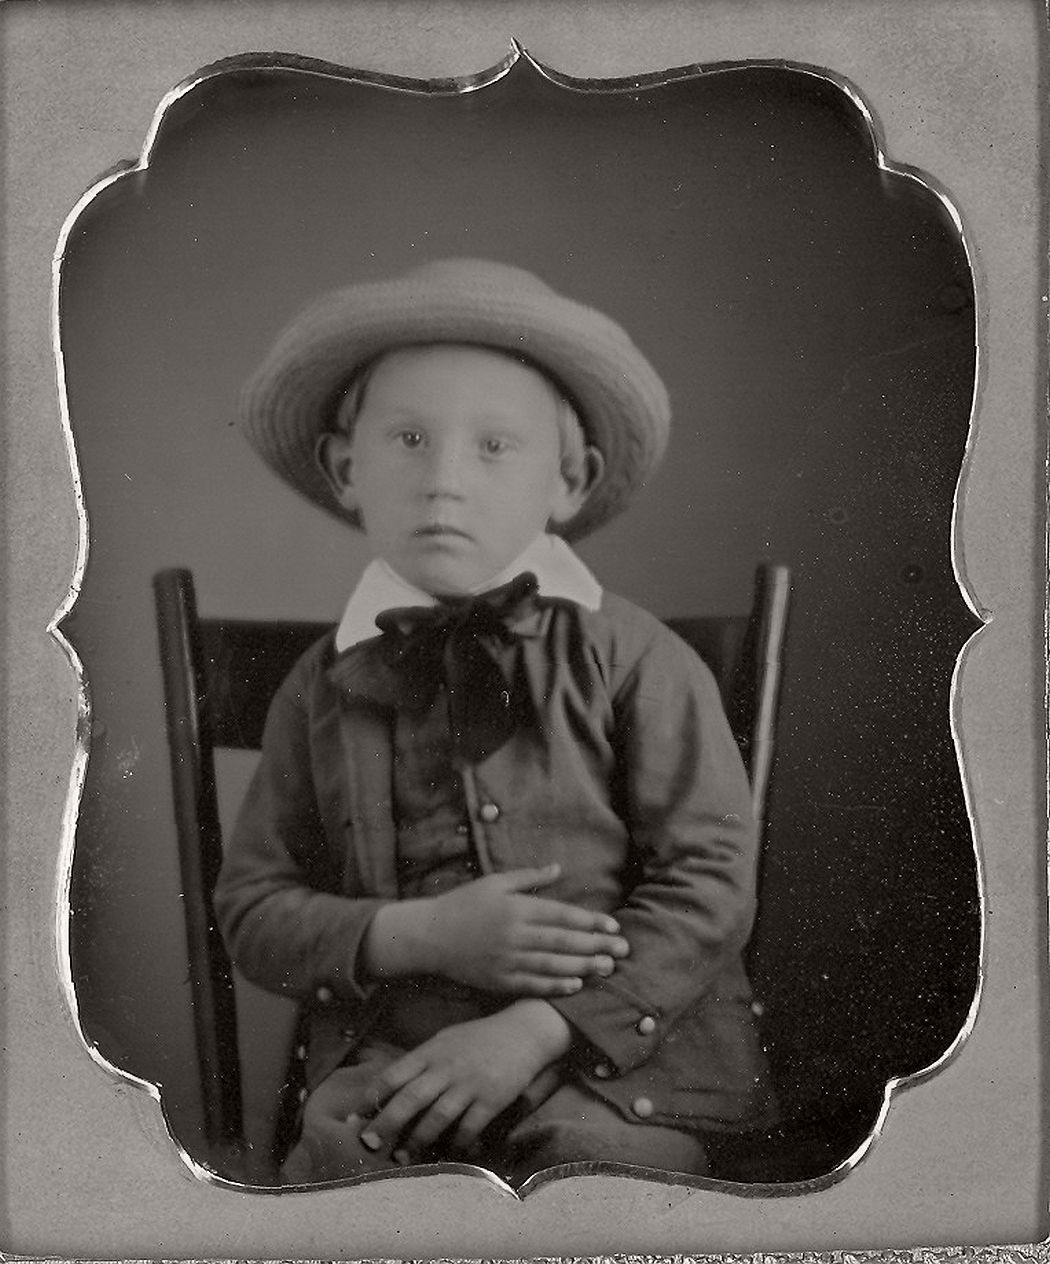 victorian-era-daguerreotype-of-men-in-hat-1850s-xix-century-07